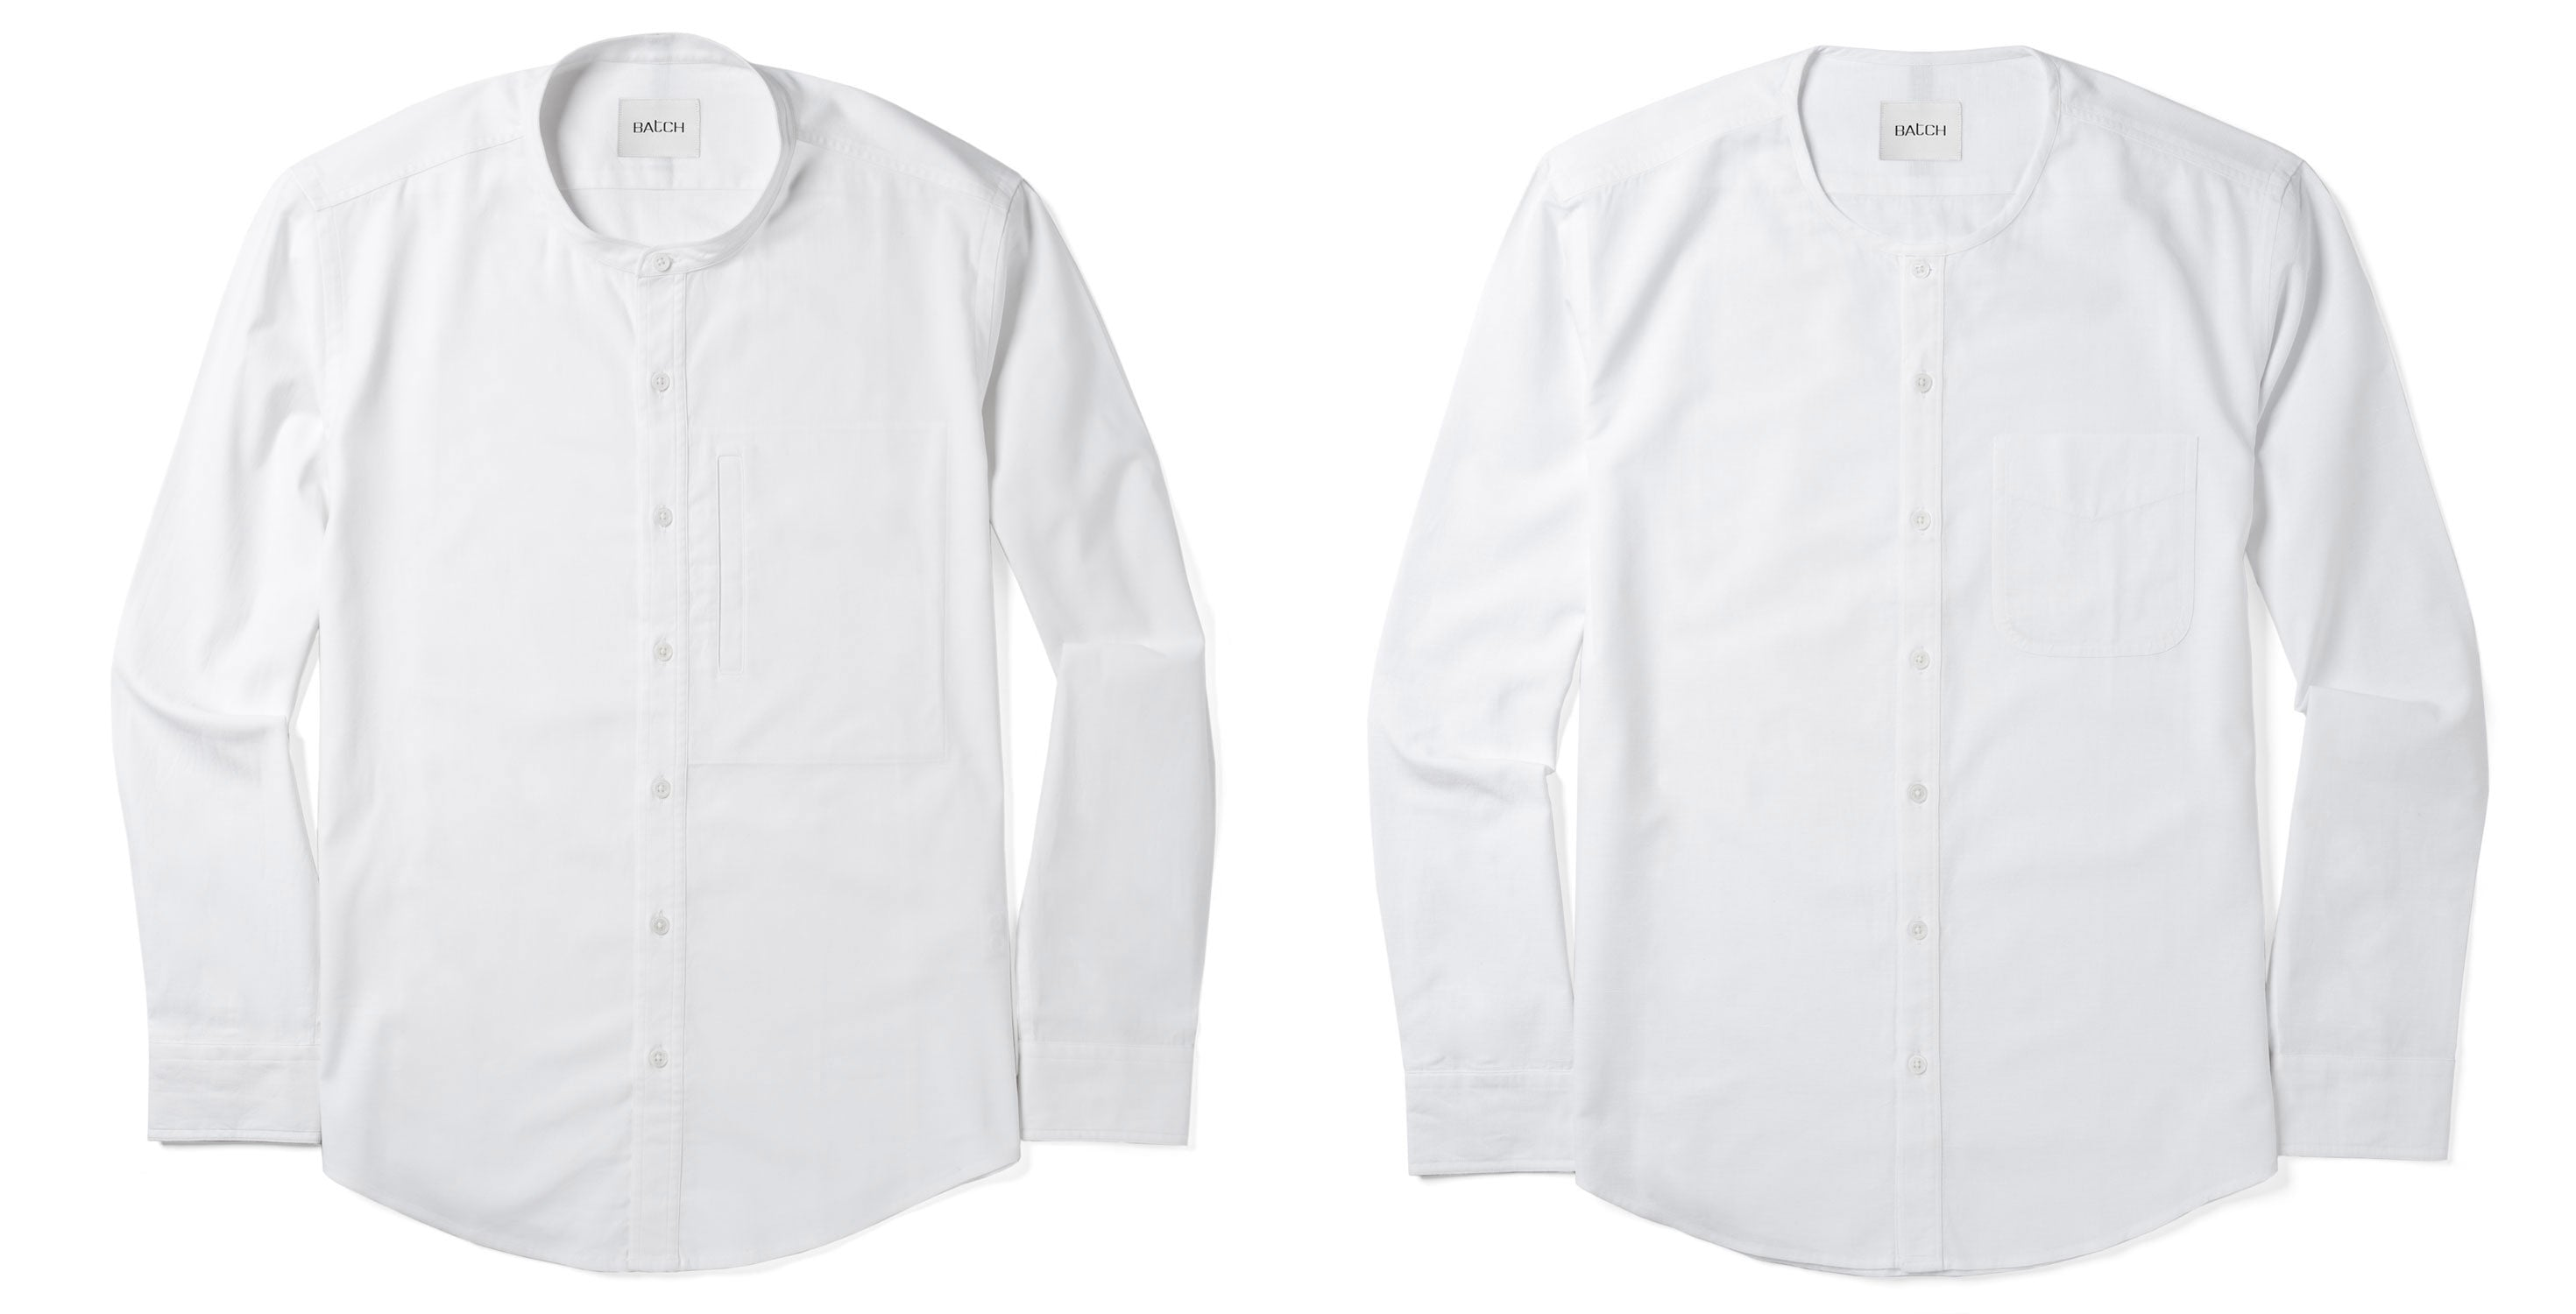 Band Collar Shirt Vs Collarless Shirt Image